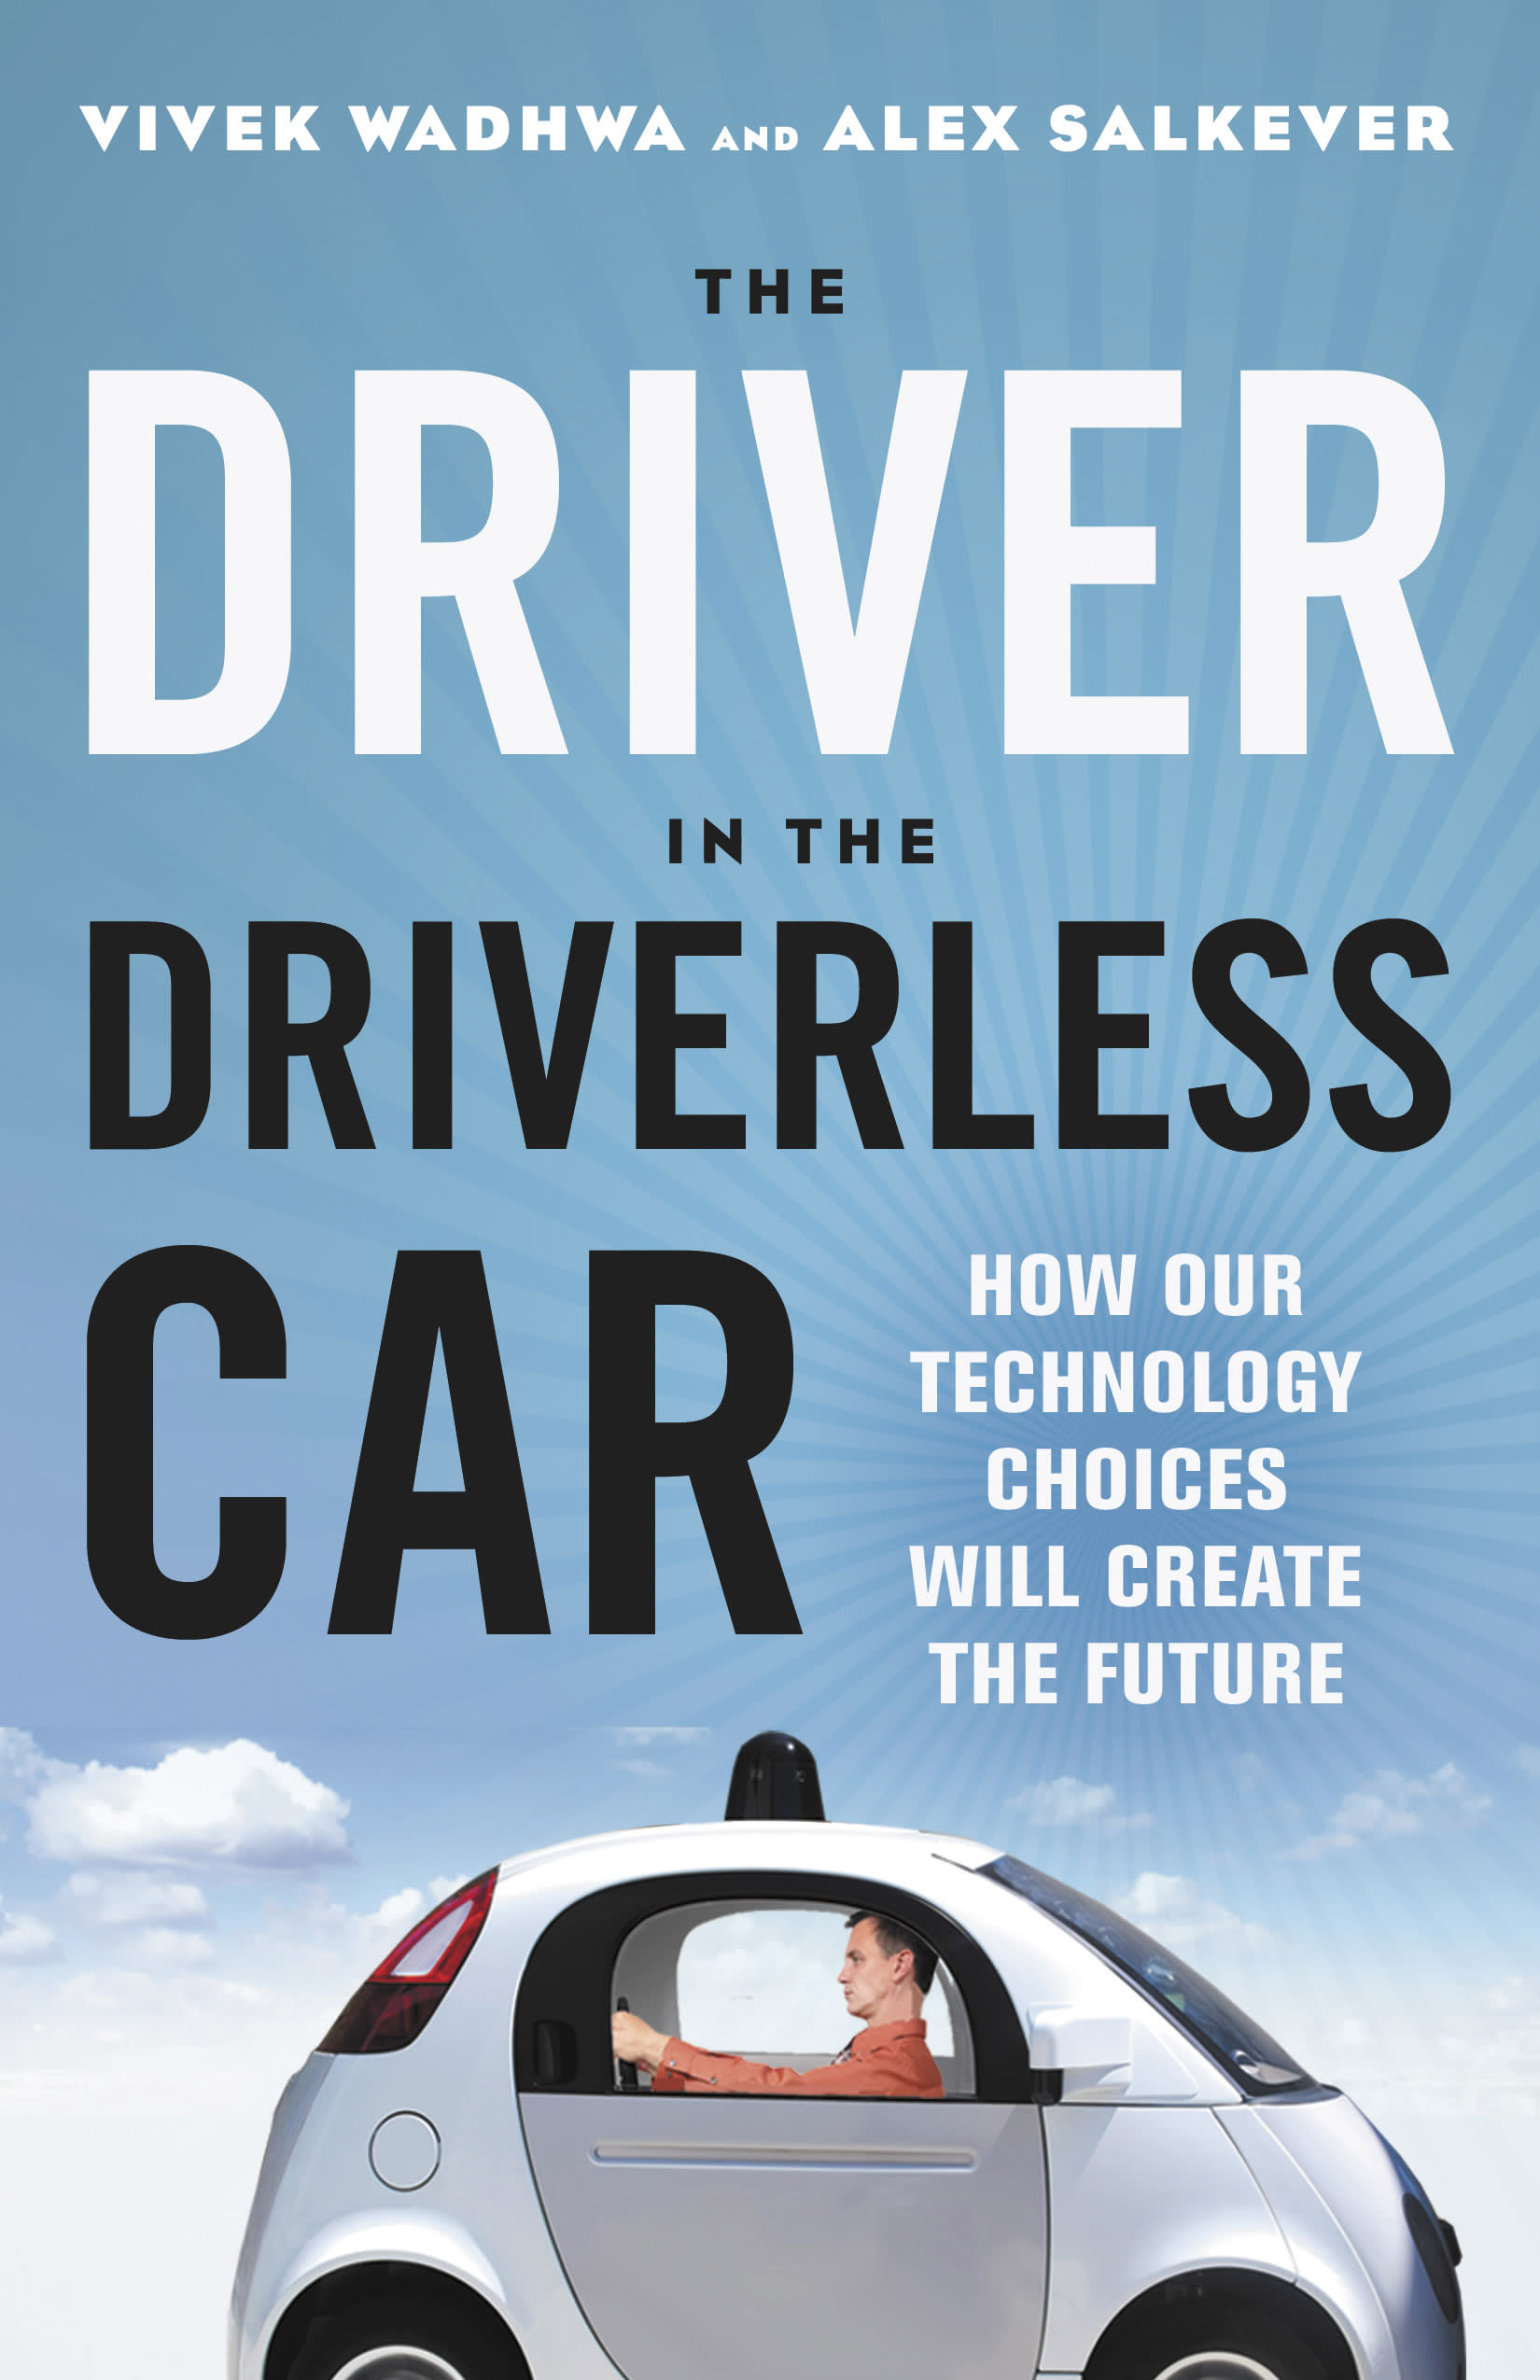 The Driver in the Driverless Car by Vivek Wadhwa, Alex Salkever